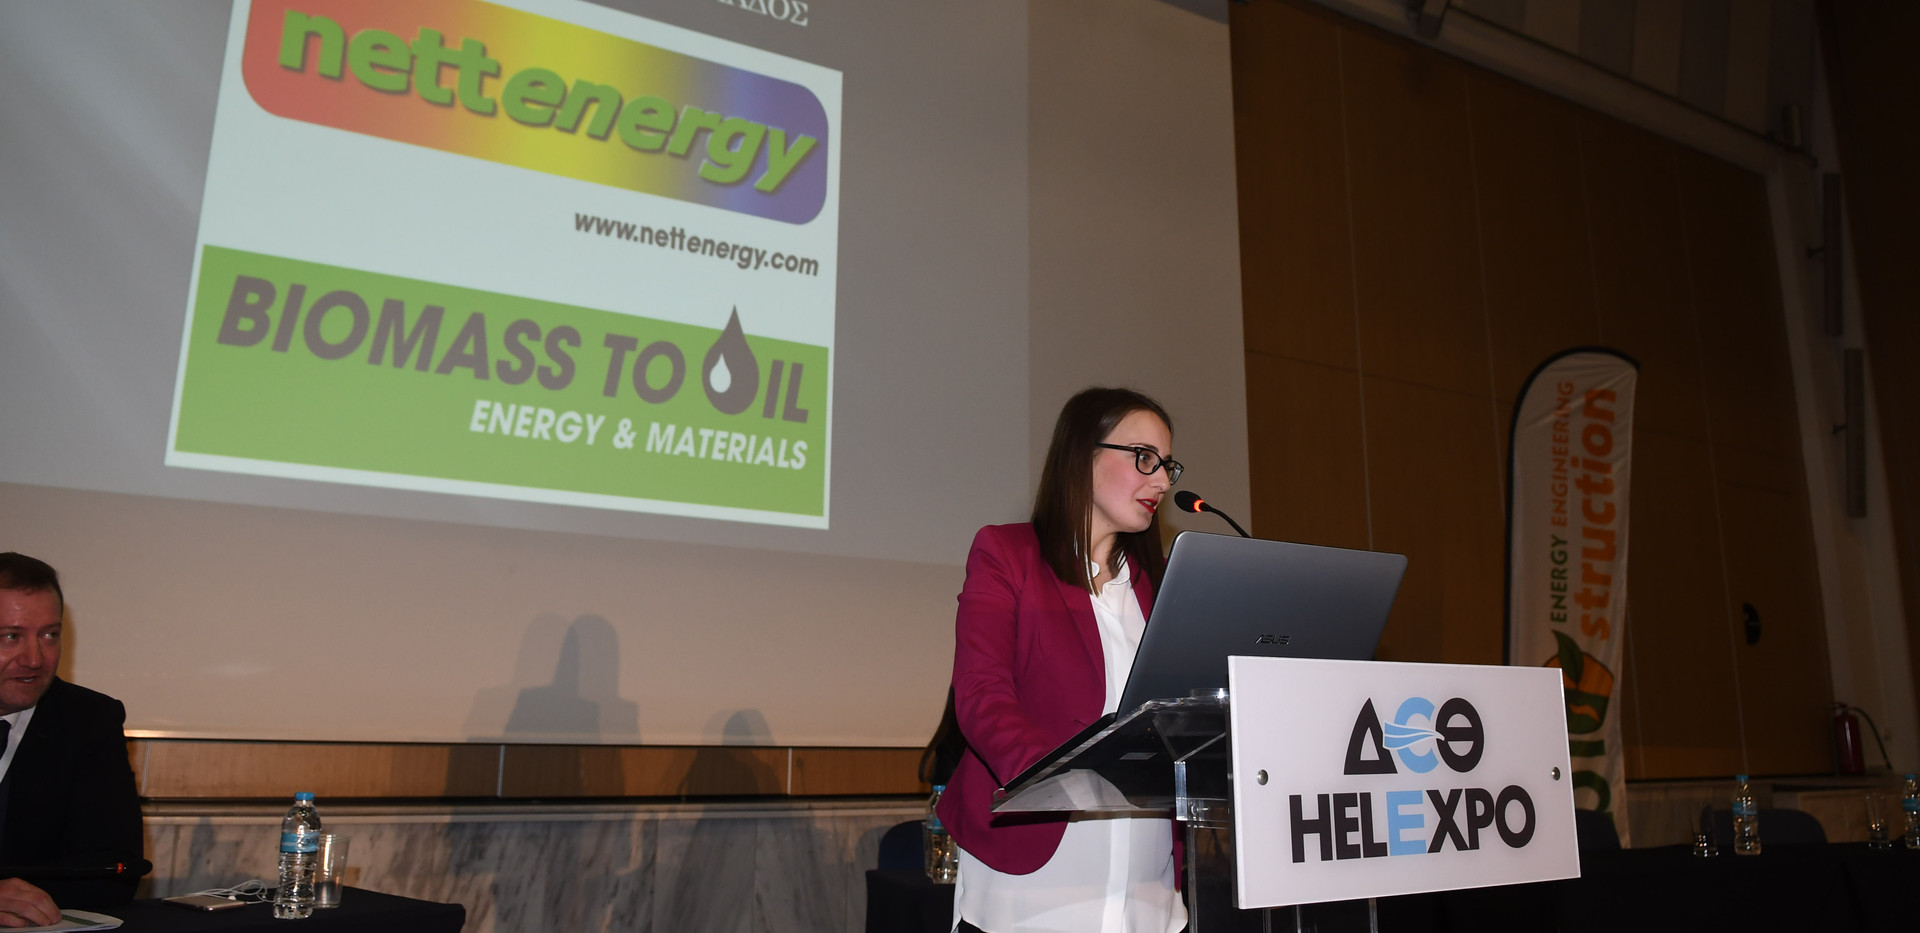 Anastasia Giotsa, Representative of NetEnergy-Biostruction